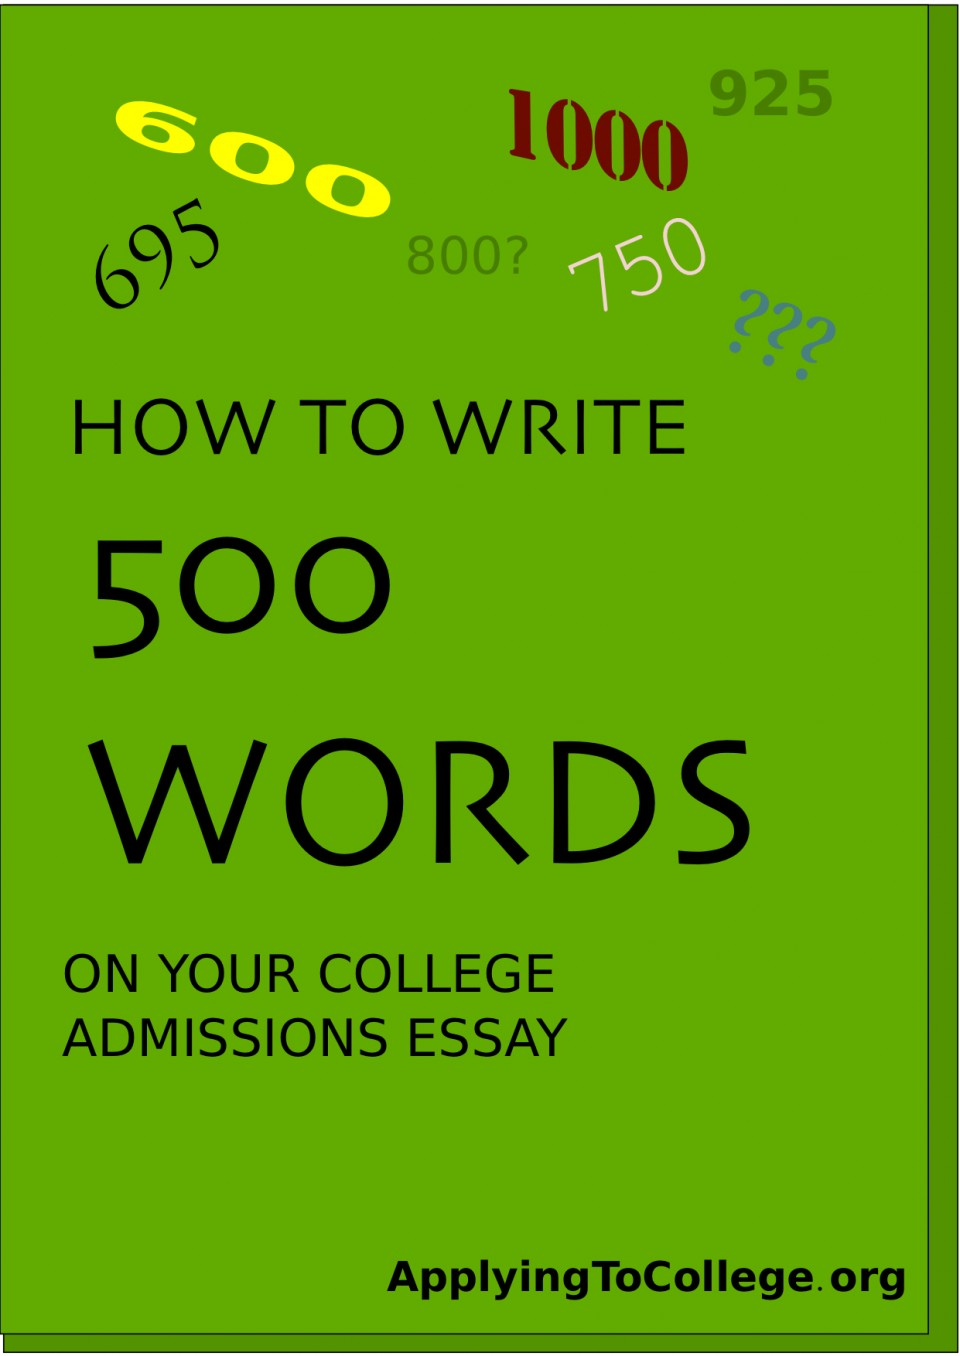 003 2903628546 Word Count For Common Application Essay College Beautiful Maximum 2018 960